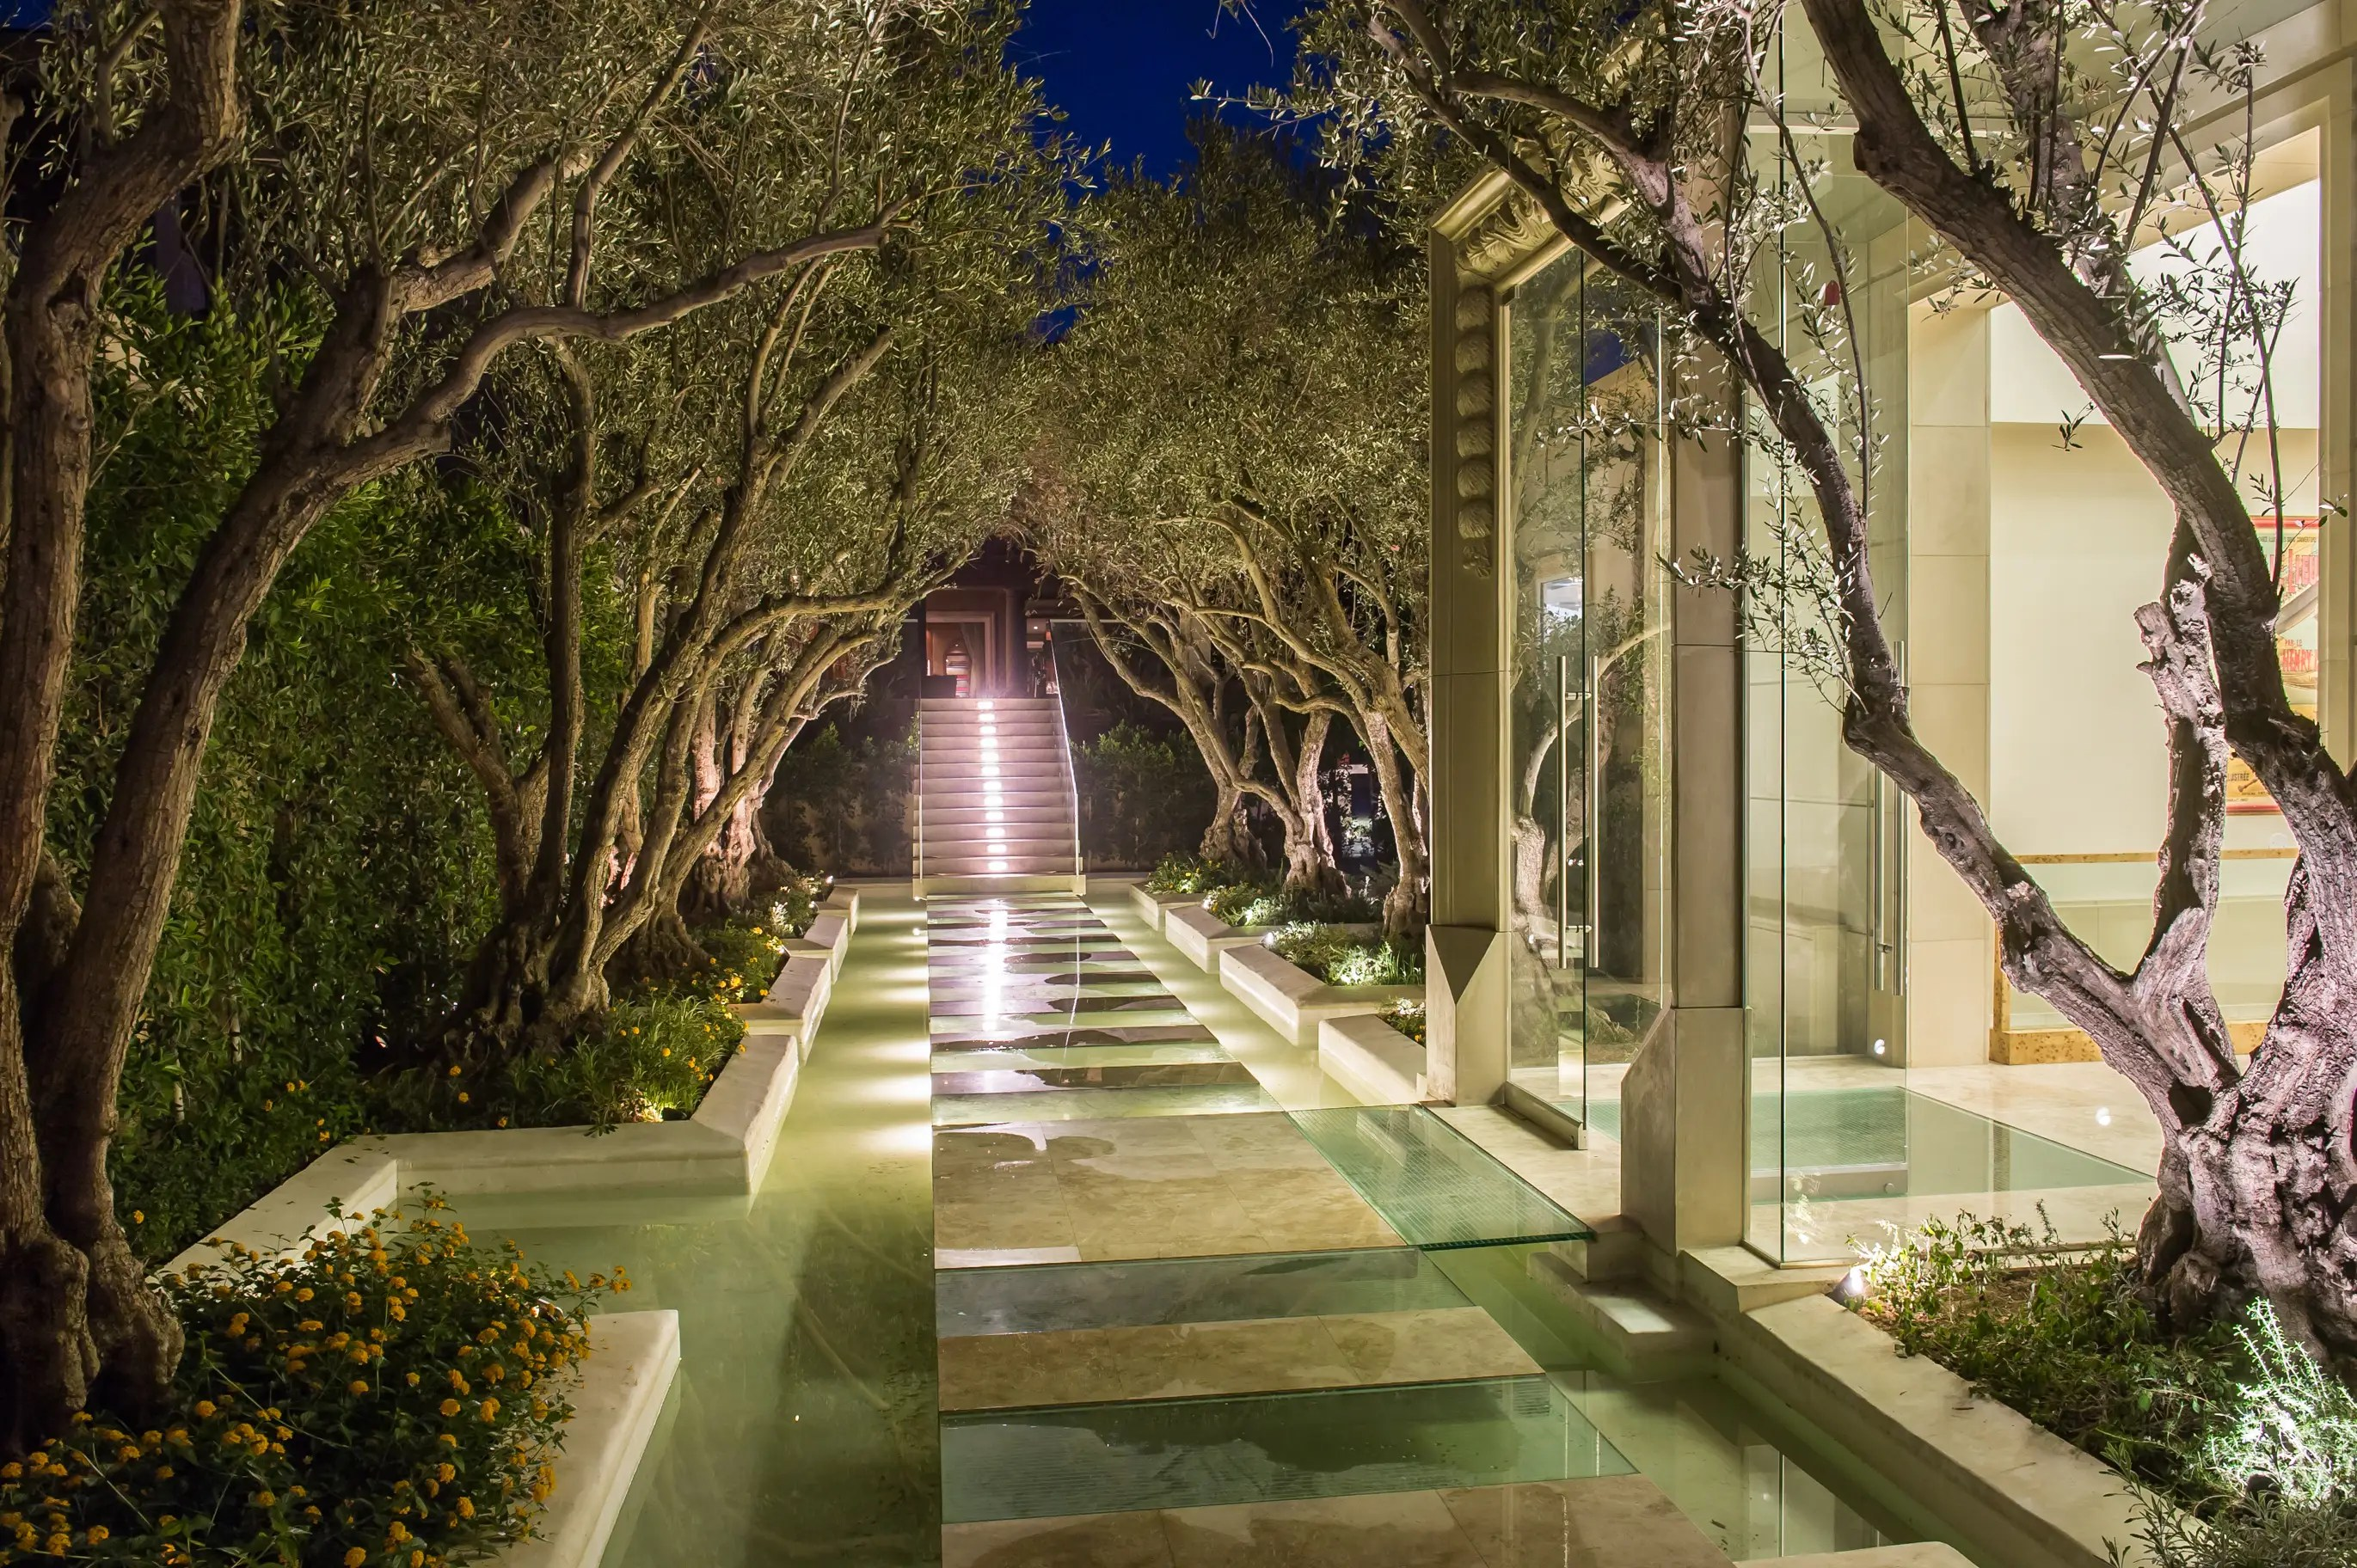 Guests enter through a floating glass-floor walkway lined with olive trees.